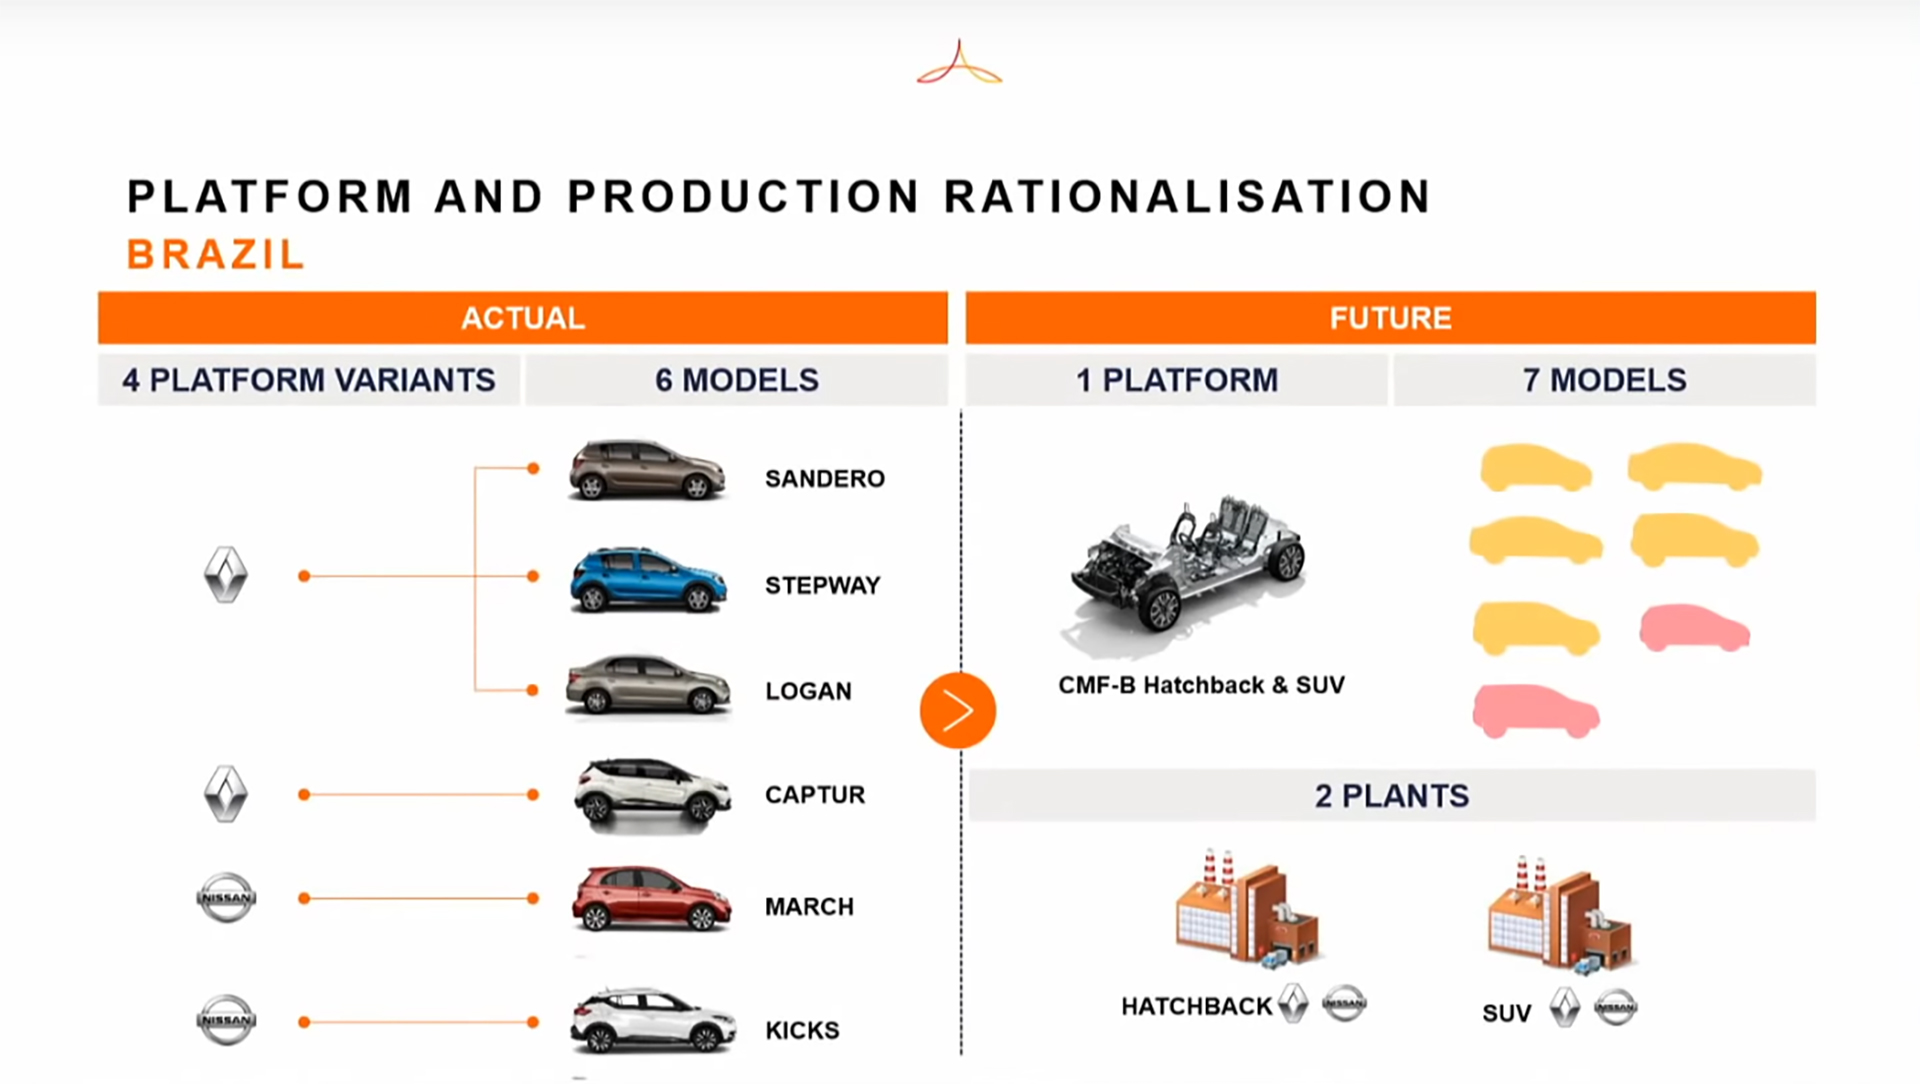 Alliance Renault Nissan Mitsubishi - 2020 - Alliance new cooperation business model - Brazil production